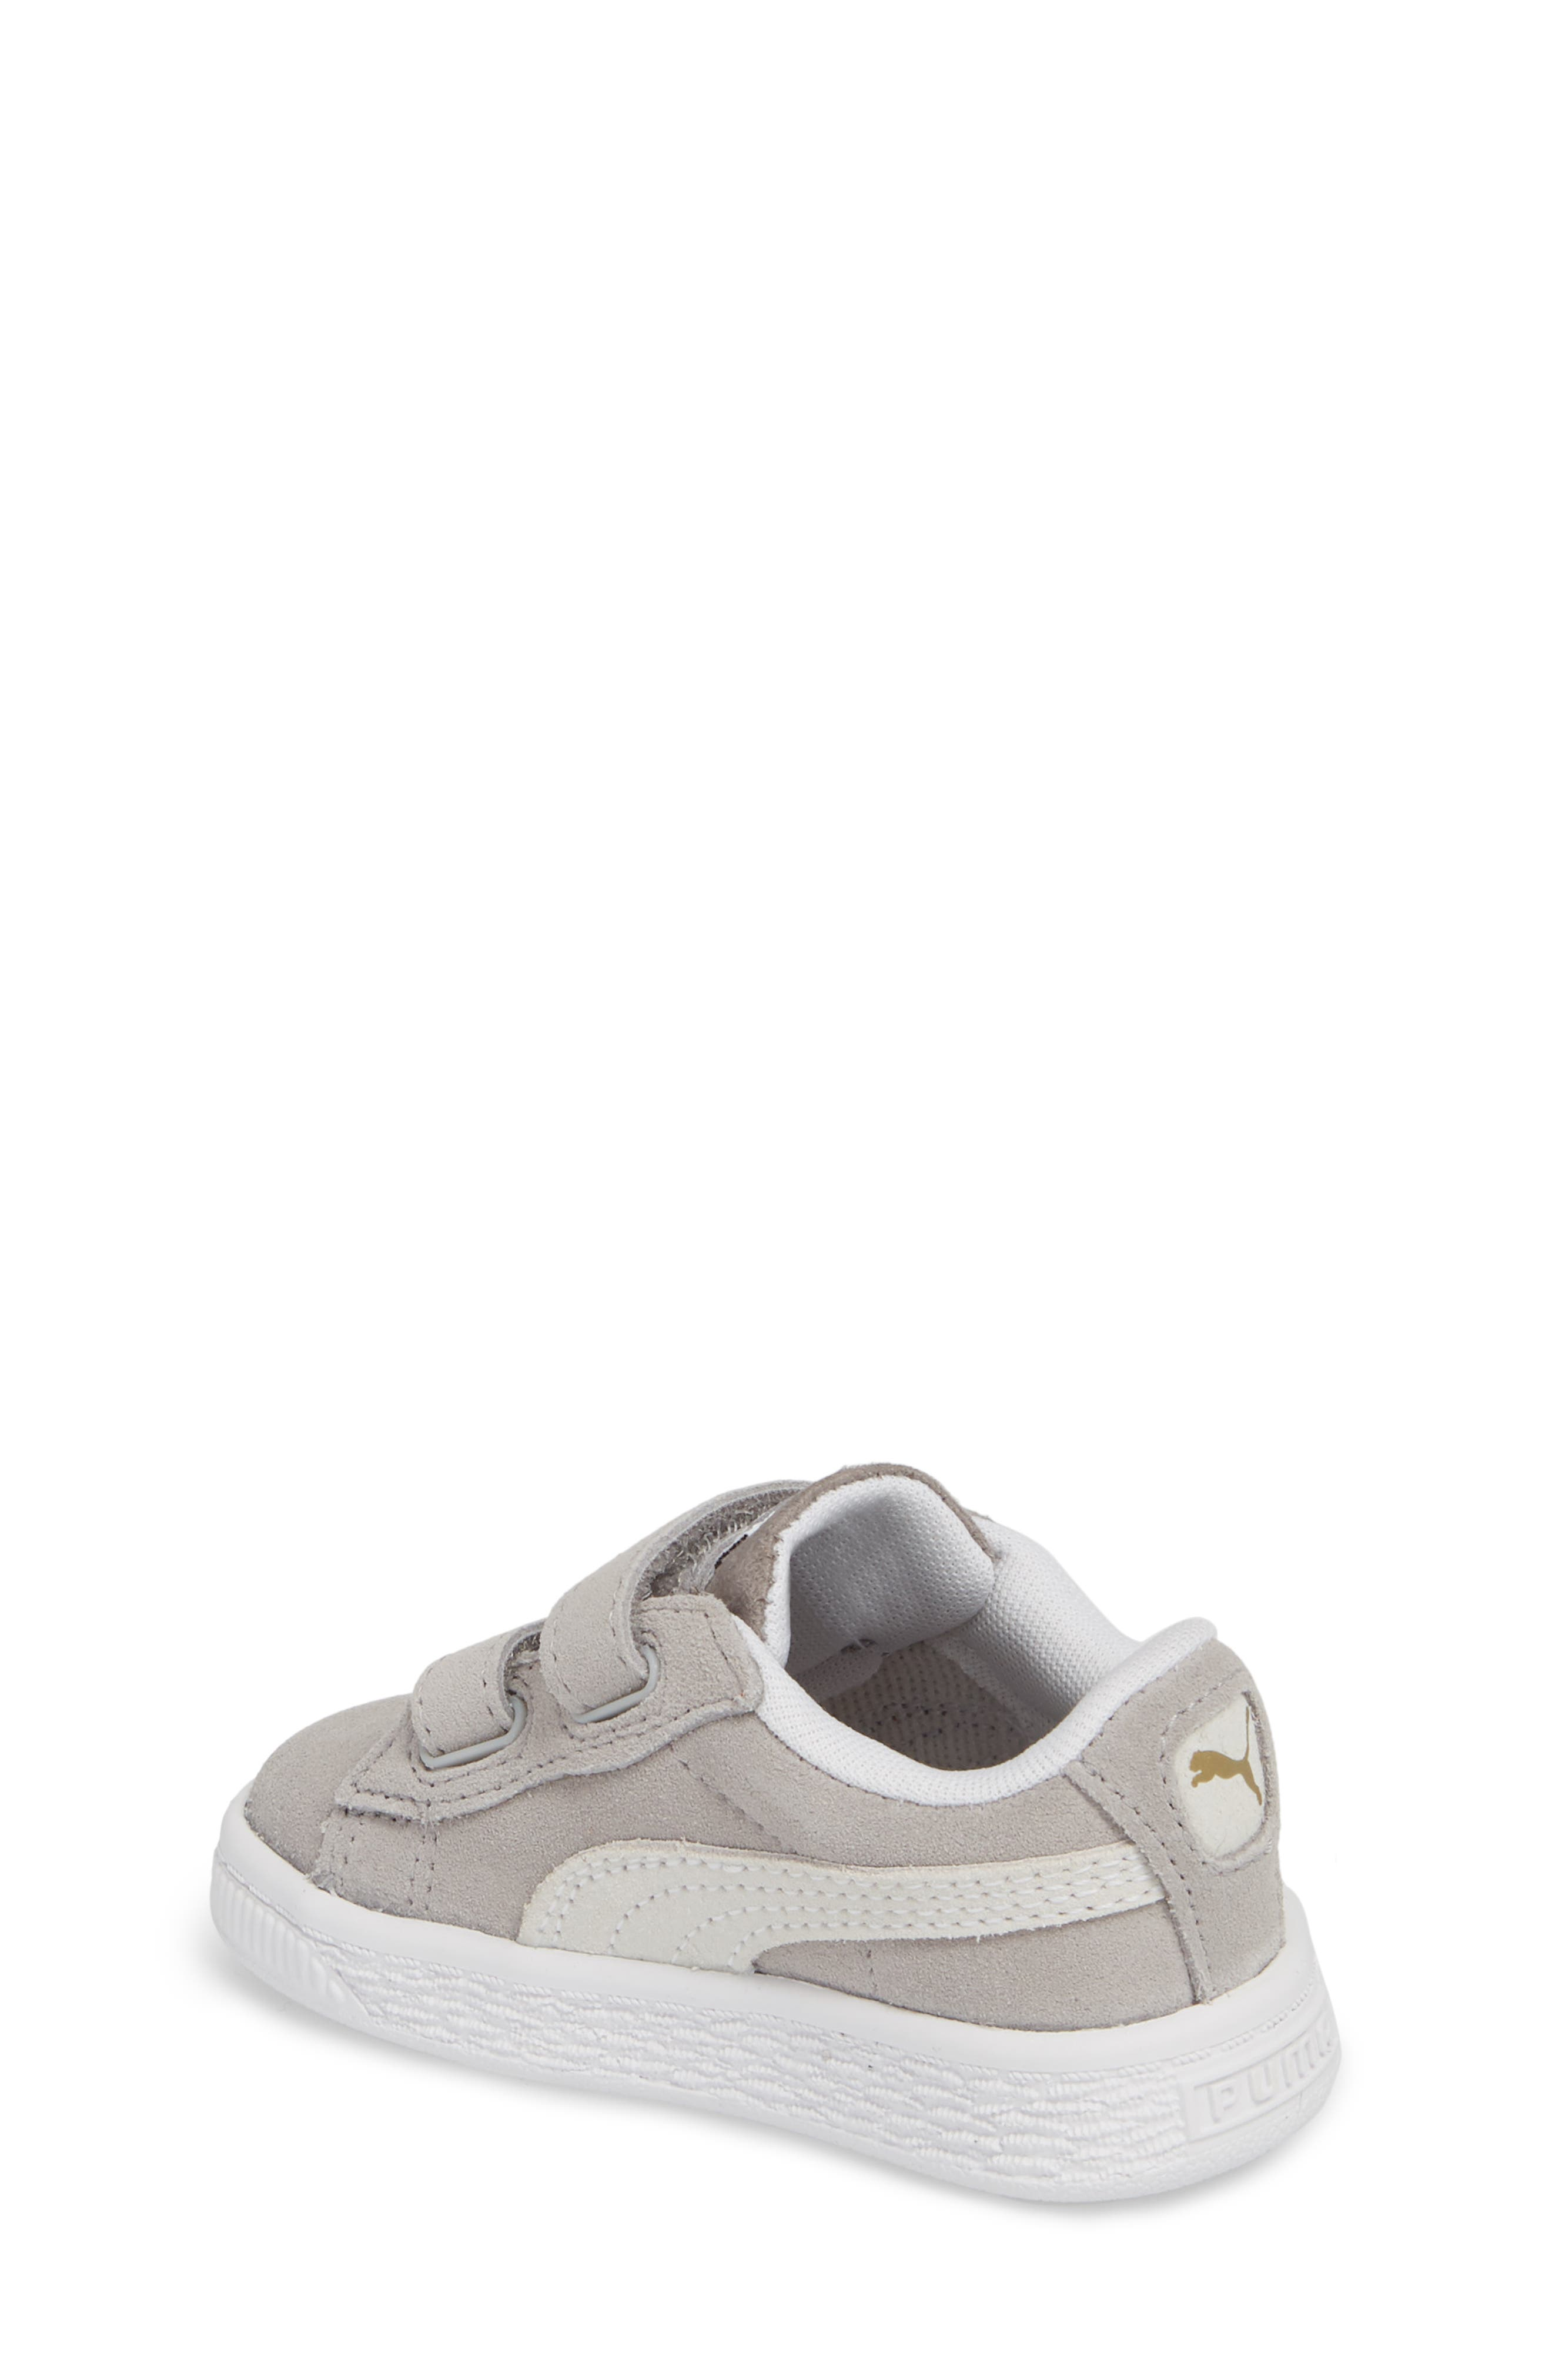 Suede Classic Sneaker,                             Alternate thumbnail 2, color,                             Ash/ Puma White